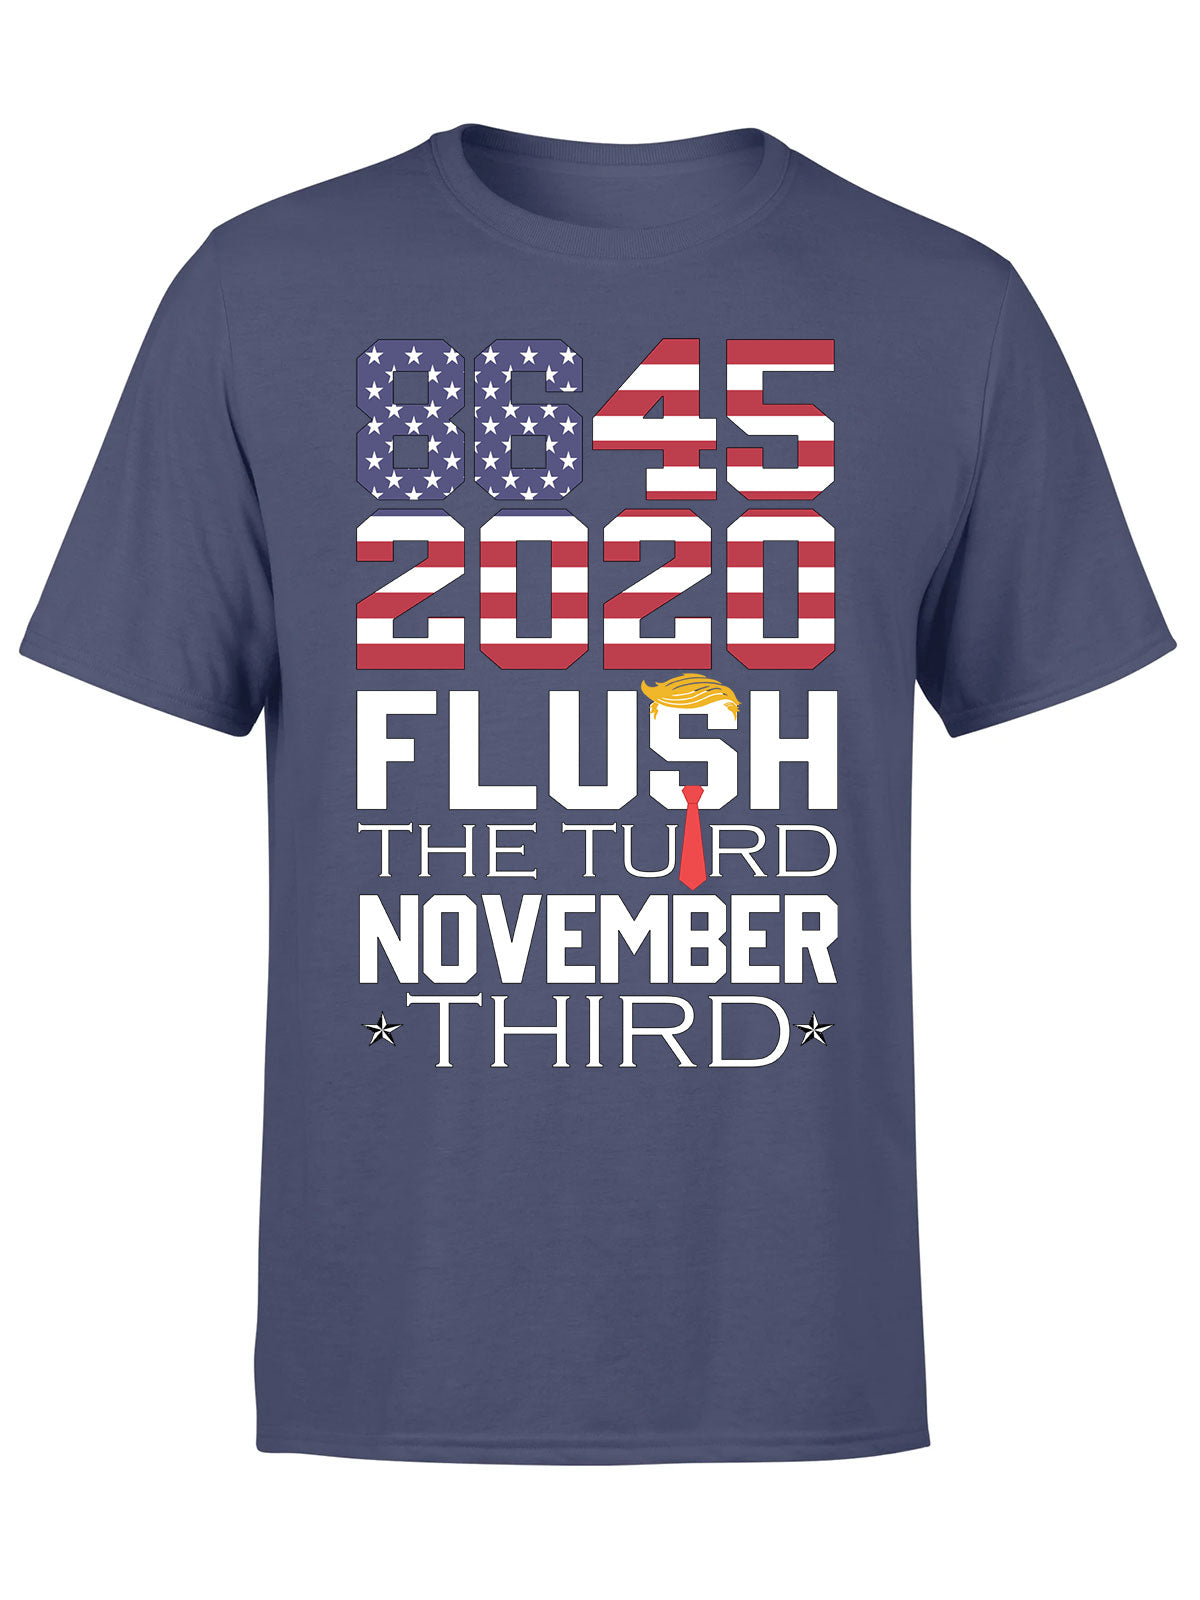 8645 - Classic Men T-shirt - Anti Trump Shirt, Anti-Trump POTUS Vote Shirt, Flush The Turd November 3rd Shirt